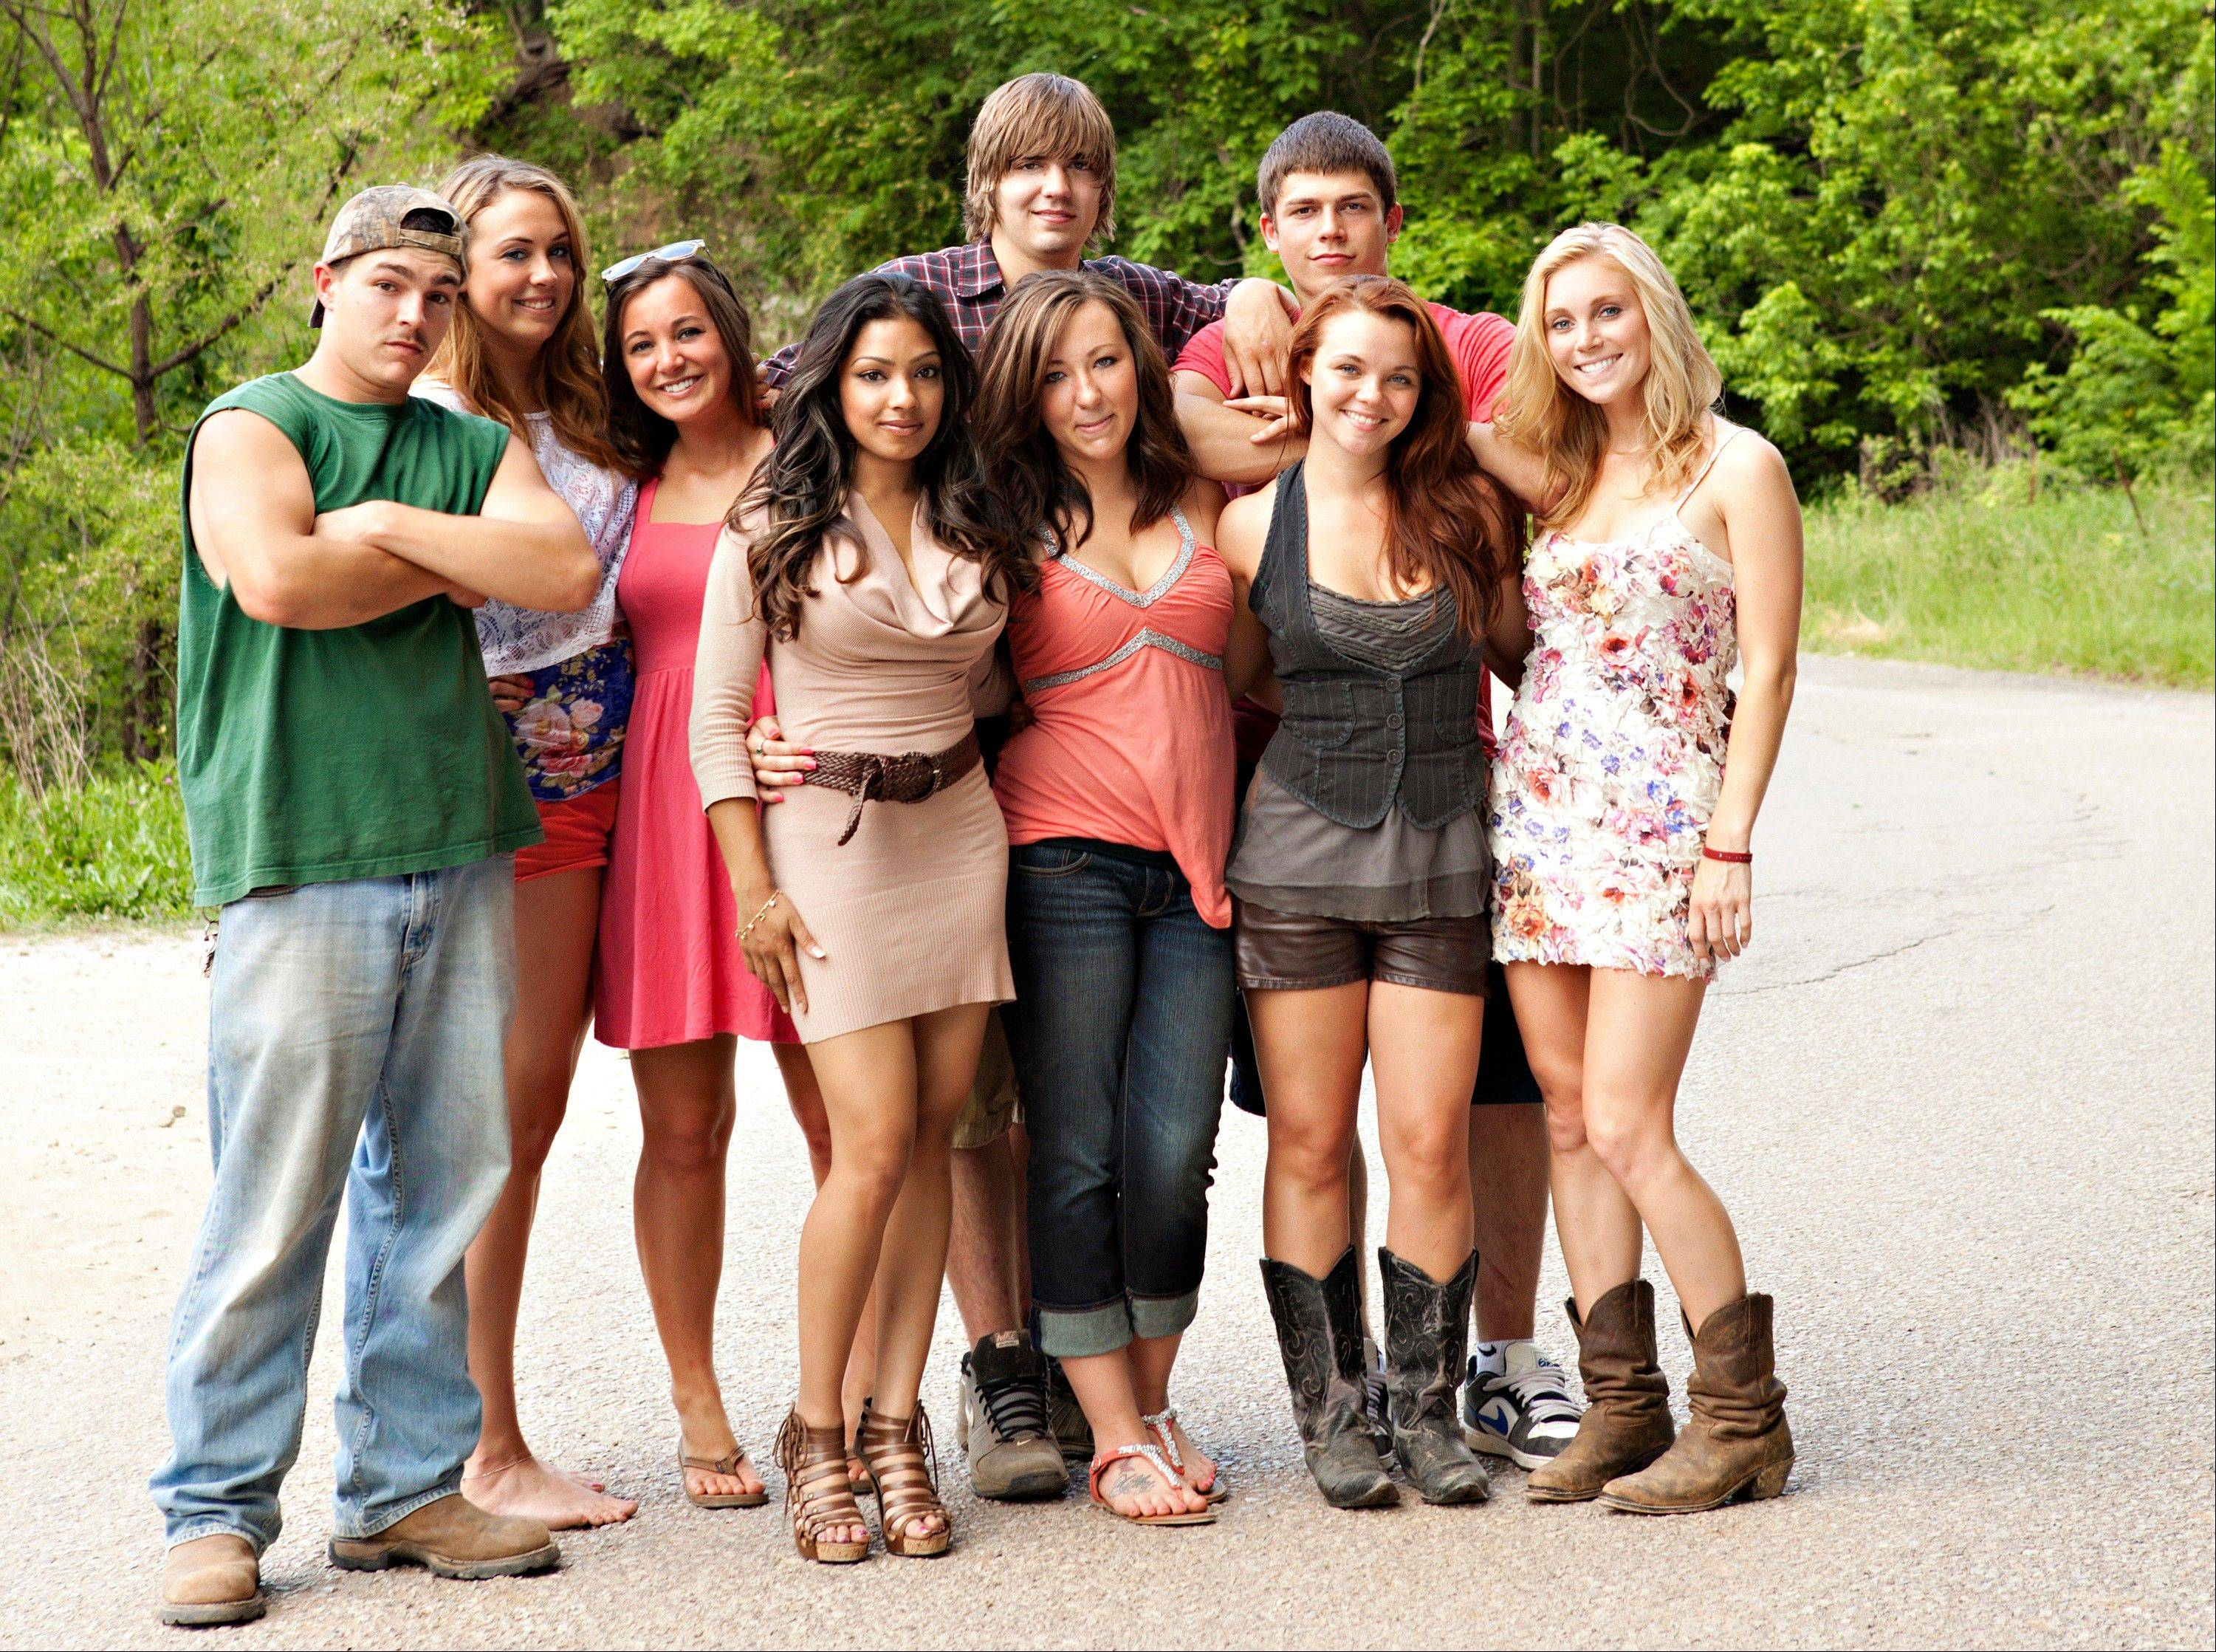 The original cast of the reality series �Buckwild,� from left, included the late Shain Gandee, Anna, Katie, Salwa, Joey, background center, Ashley, Tyler, background right, Cara and Shae. MTV said Wednesday, it is canceling the West Virginia-based reality TV show.